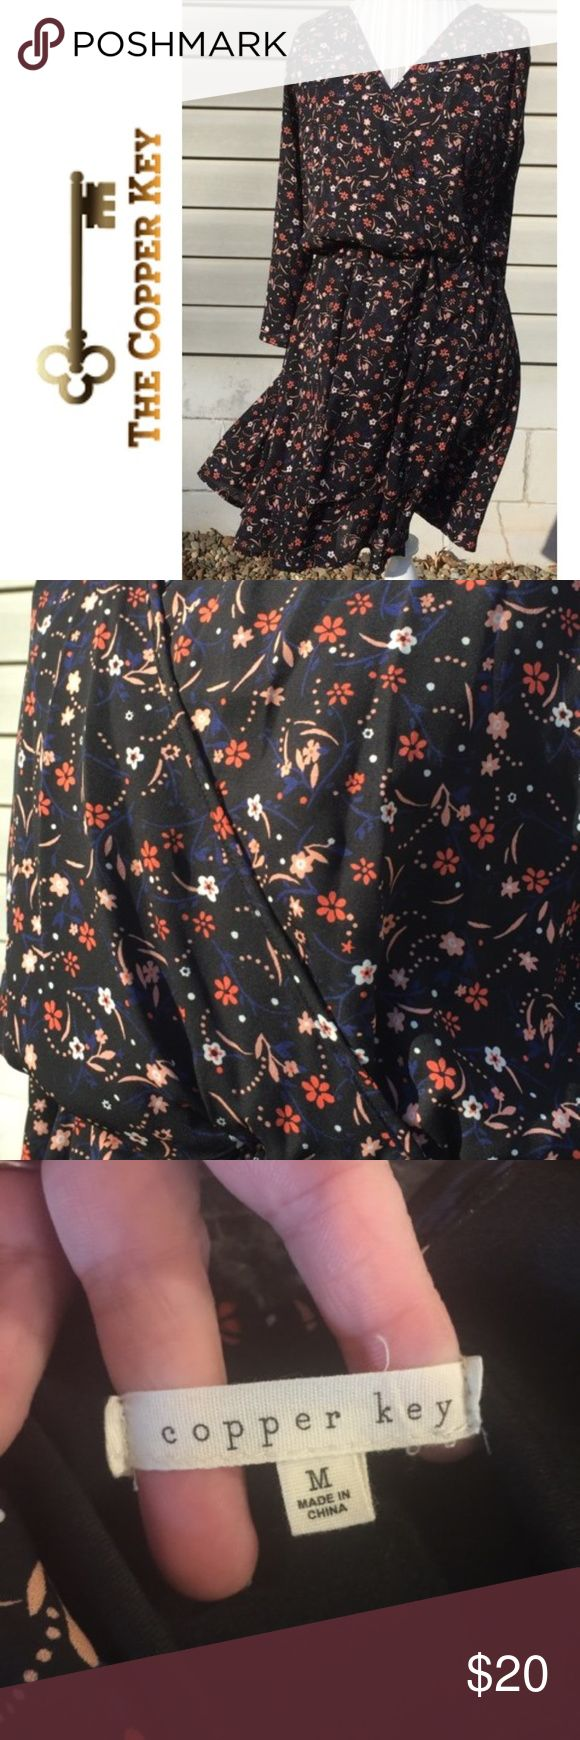 """Copper Key Medium flowing flowery dress EUC Coppery Key flowing flowered dress with a dark navy background.  Faux wrap a round body.  V-neck in front and v-neck with strap across shoulder in back.   19"""" pit to pit and 35"""" in length. Copper Key Dresses Mini"""